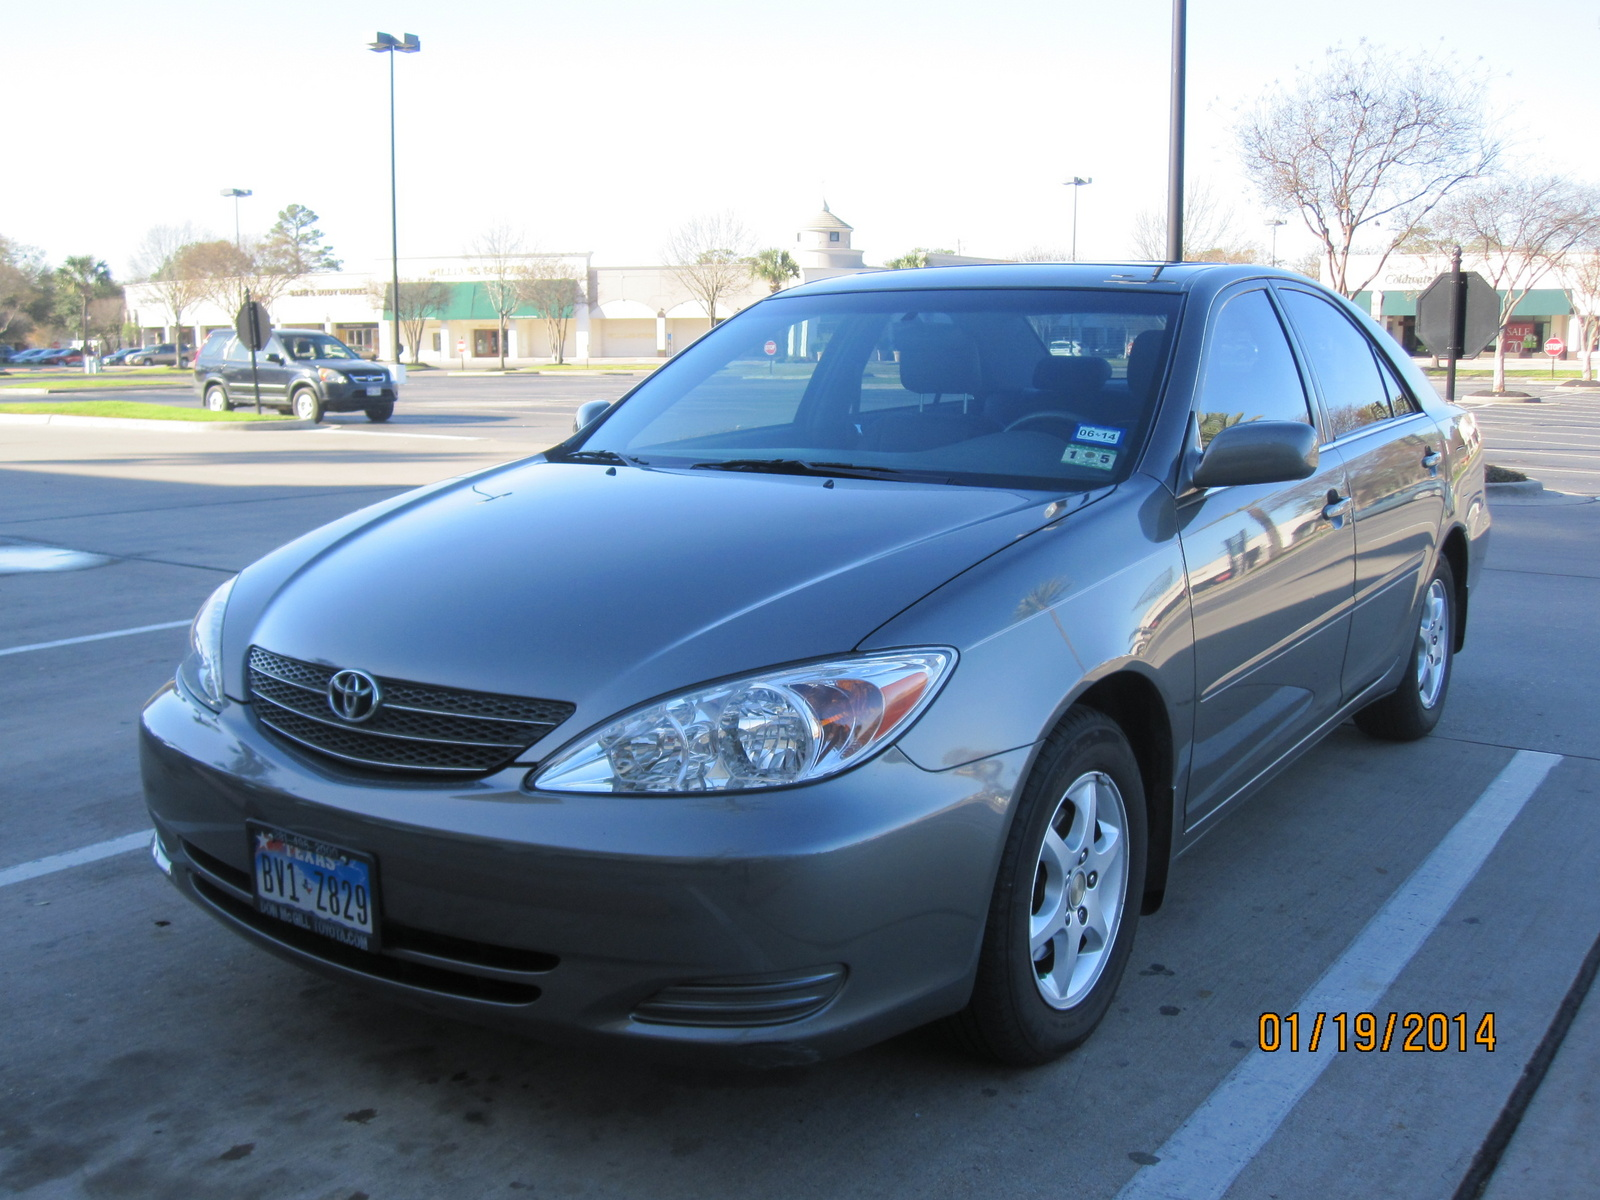 1993 nissan altima specs with 2003 Toyota Camry Pictures C3576 Pi36546570 on Dashboard 51717739 together with 2001 Nissan Altima Pictures C3010 pi36104461 also 2003 Toyota Camry Pictures C3576 pi36546570 additionally 2009 Nissan Altima Pictures C10599 pi36562141 moreover 2001 Nissan Altima Pictures C3010 pi36367746.